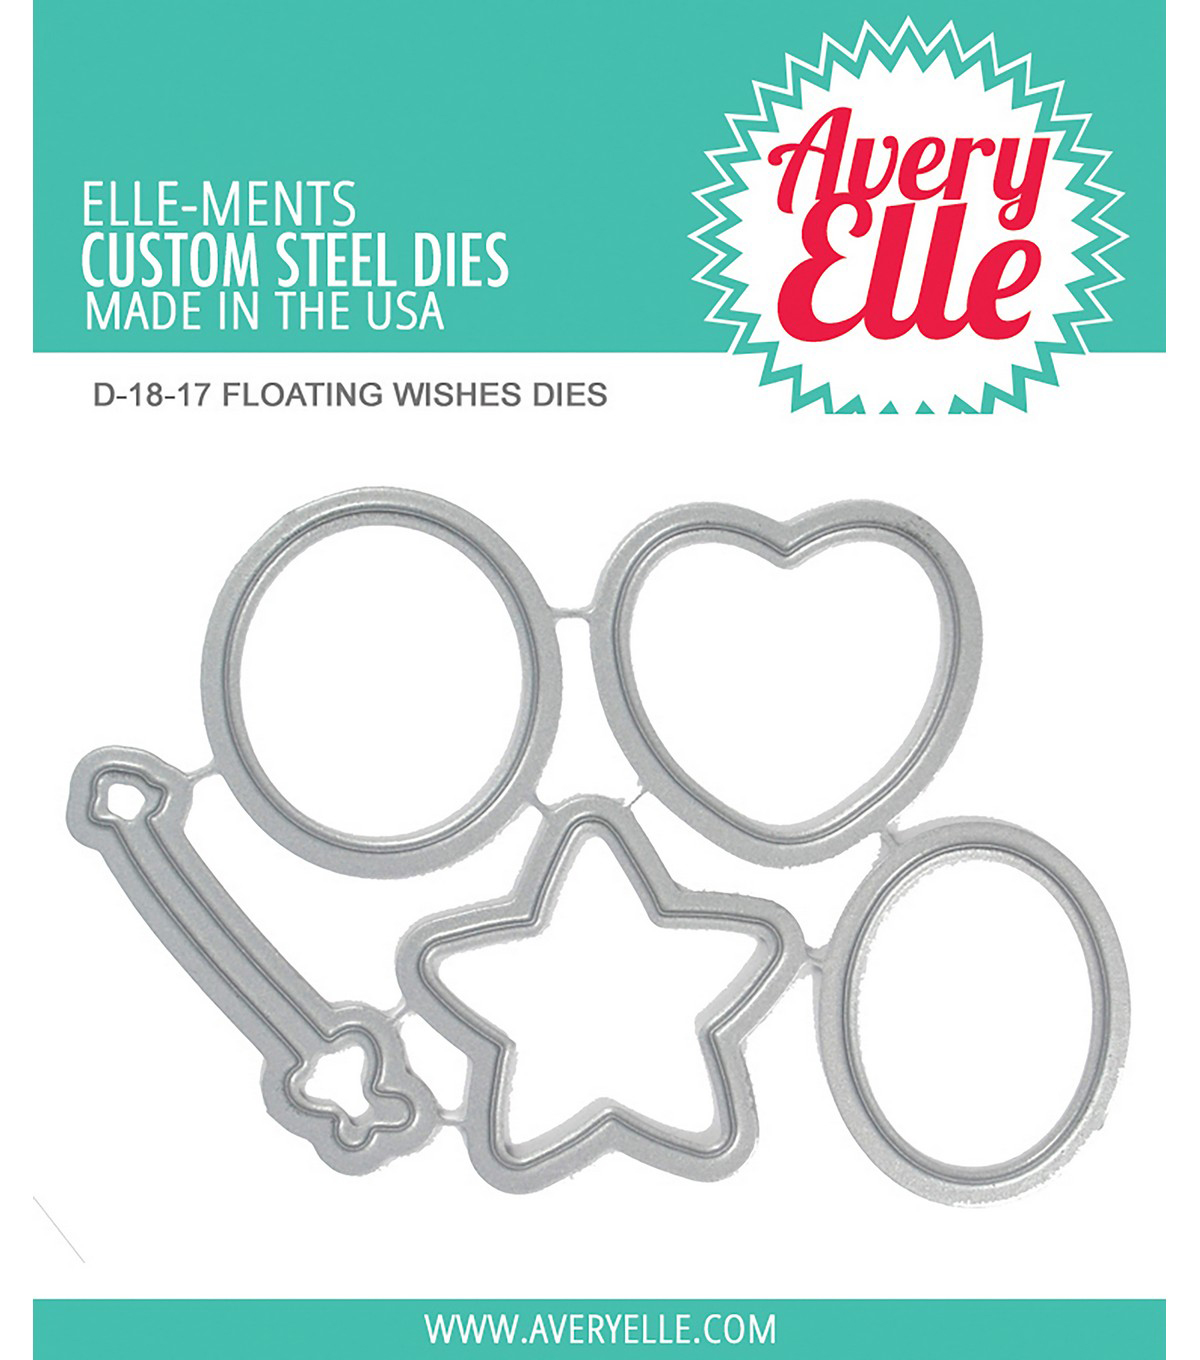 Avery Elle Elle-Ments 5 pk Dies-Floating Wishes